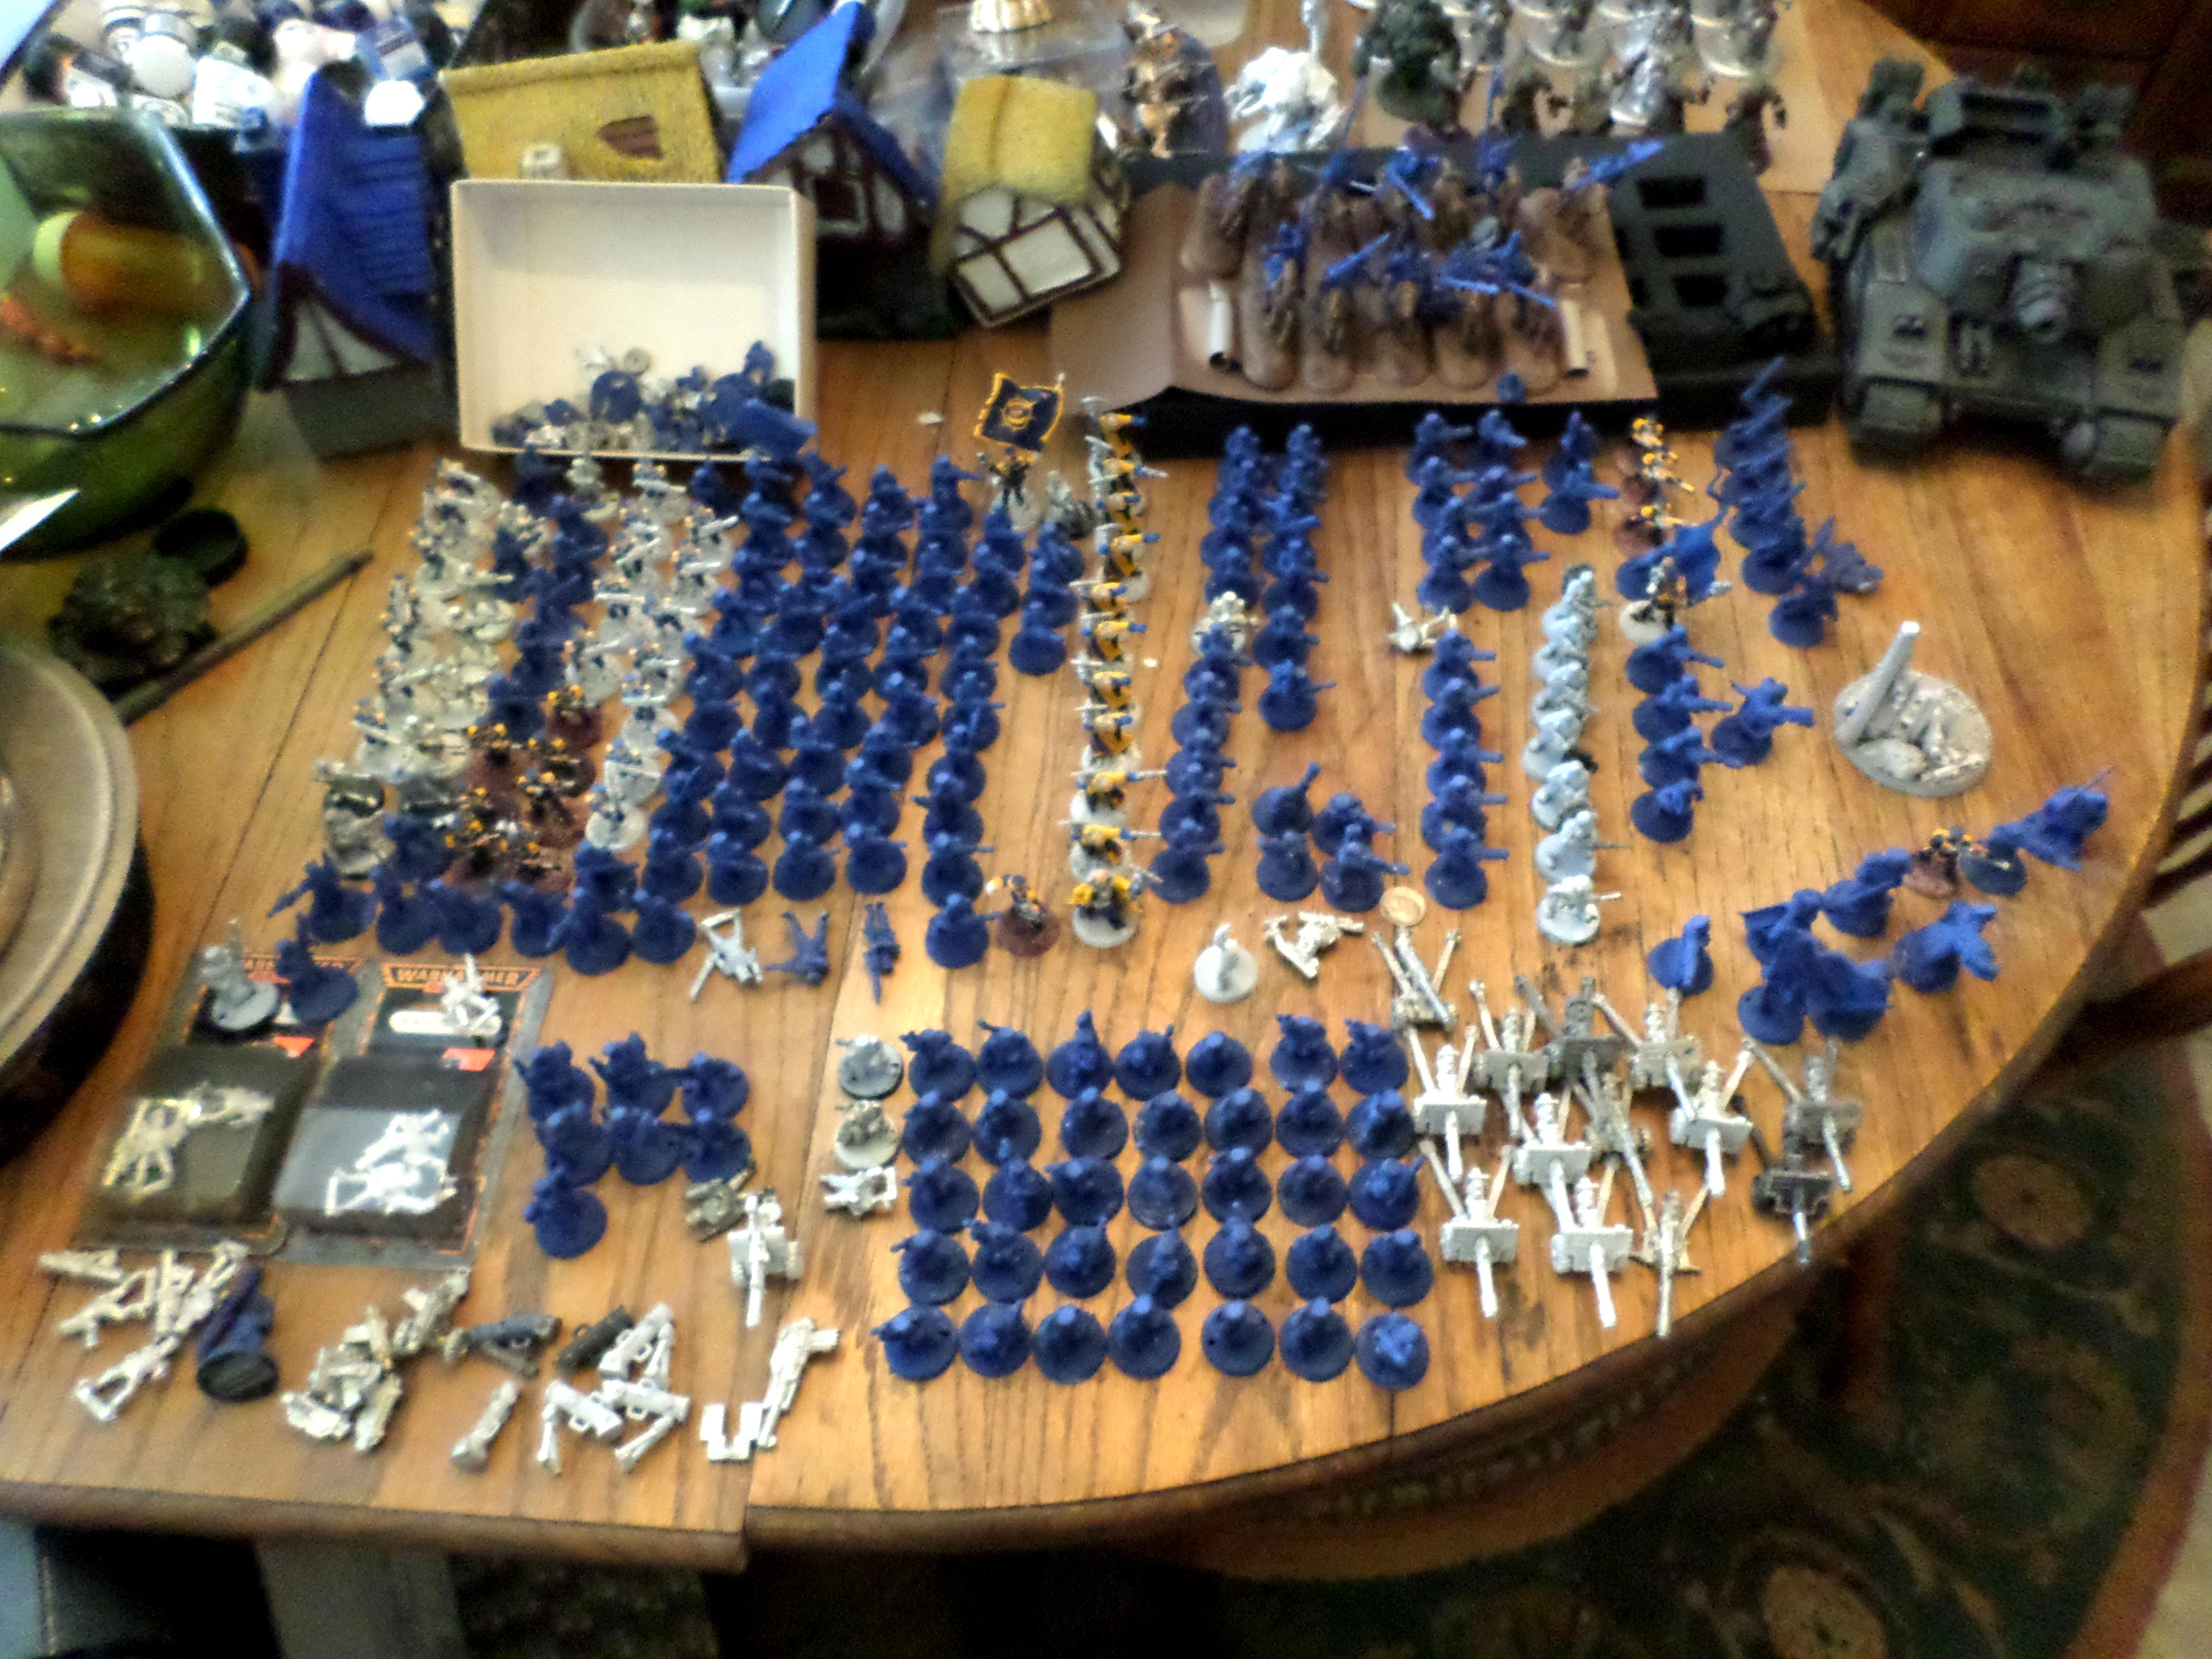 Build, Classic, Conversion, Games Workshop, Imperial Guard, Mordian, Mordian Iron Guard, Painting, Project, Warhammer 40,000, Warhammer Fantasy